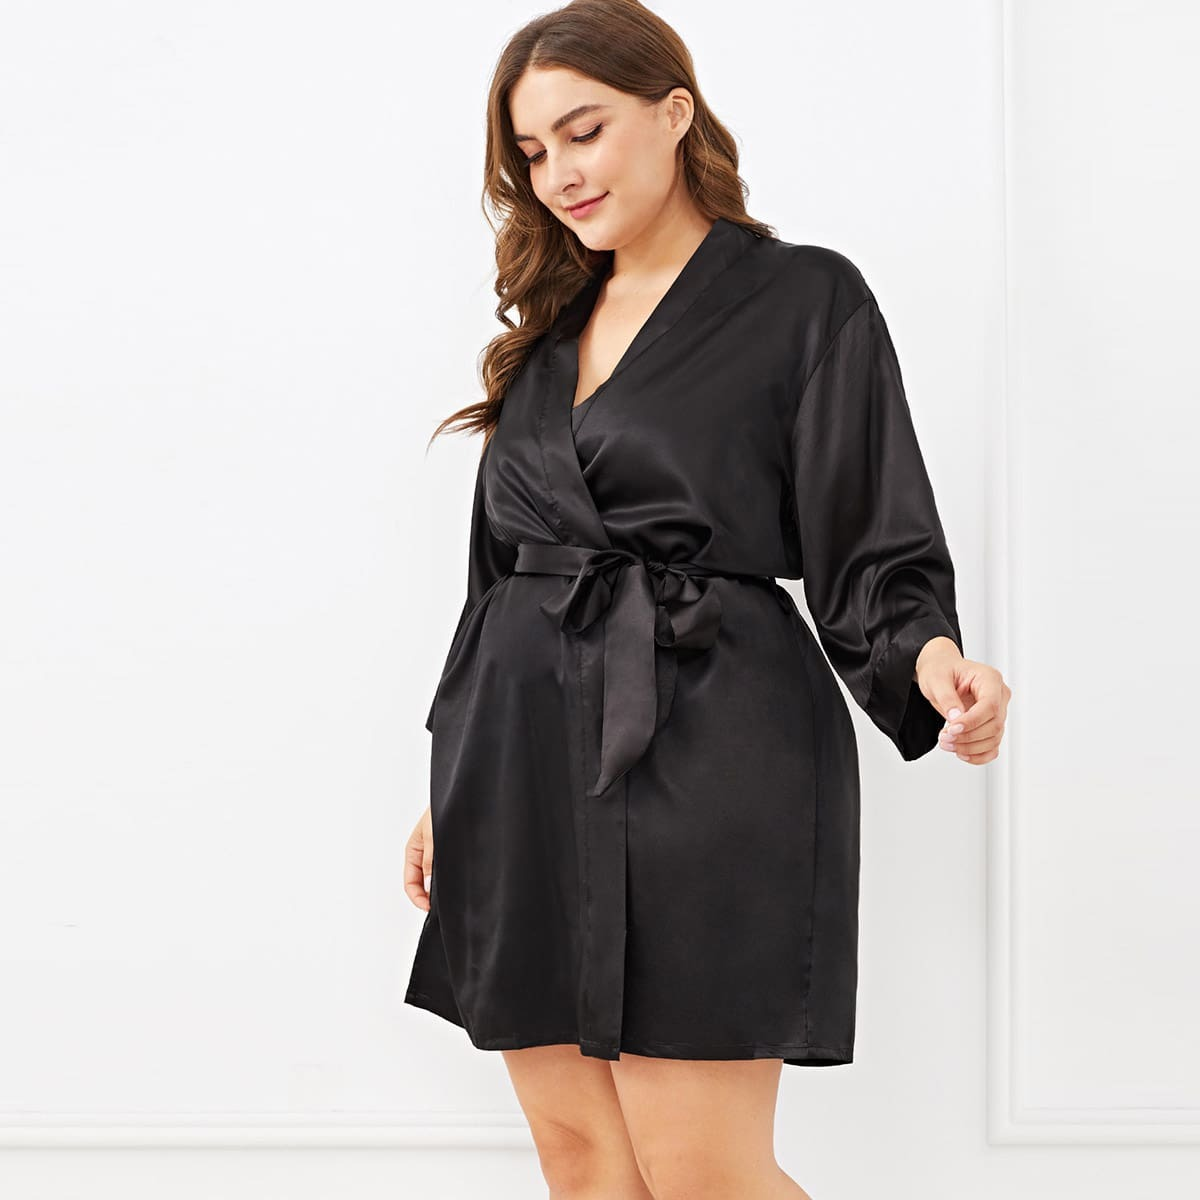 SHEIN coupon: Plus Self Belted Knot Robe